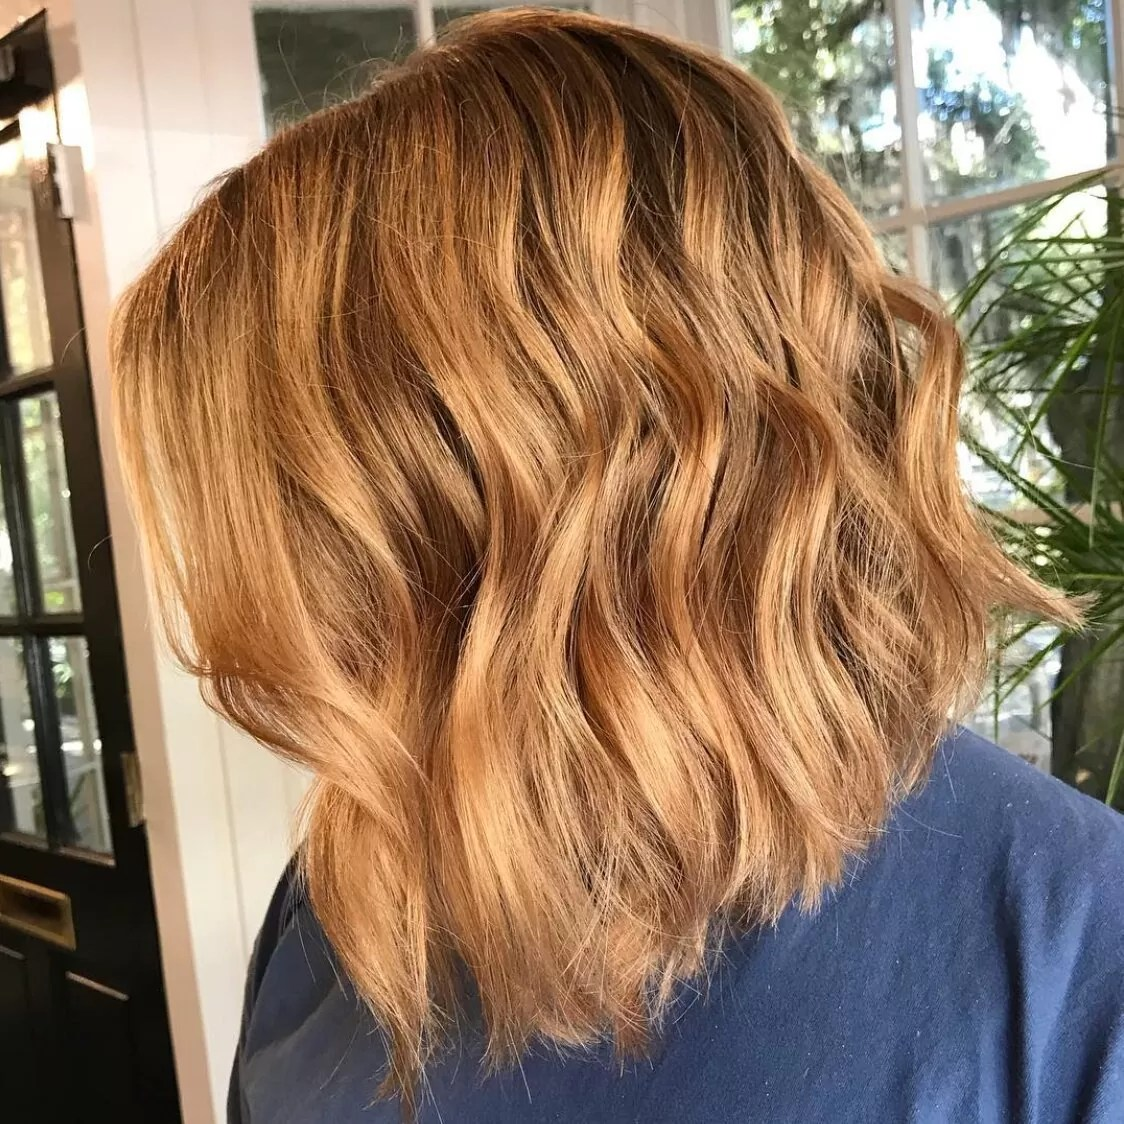 Beautiful Strawberry Blonde Hair Color Ideas | Southern Living